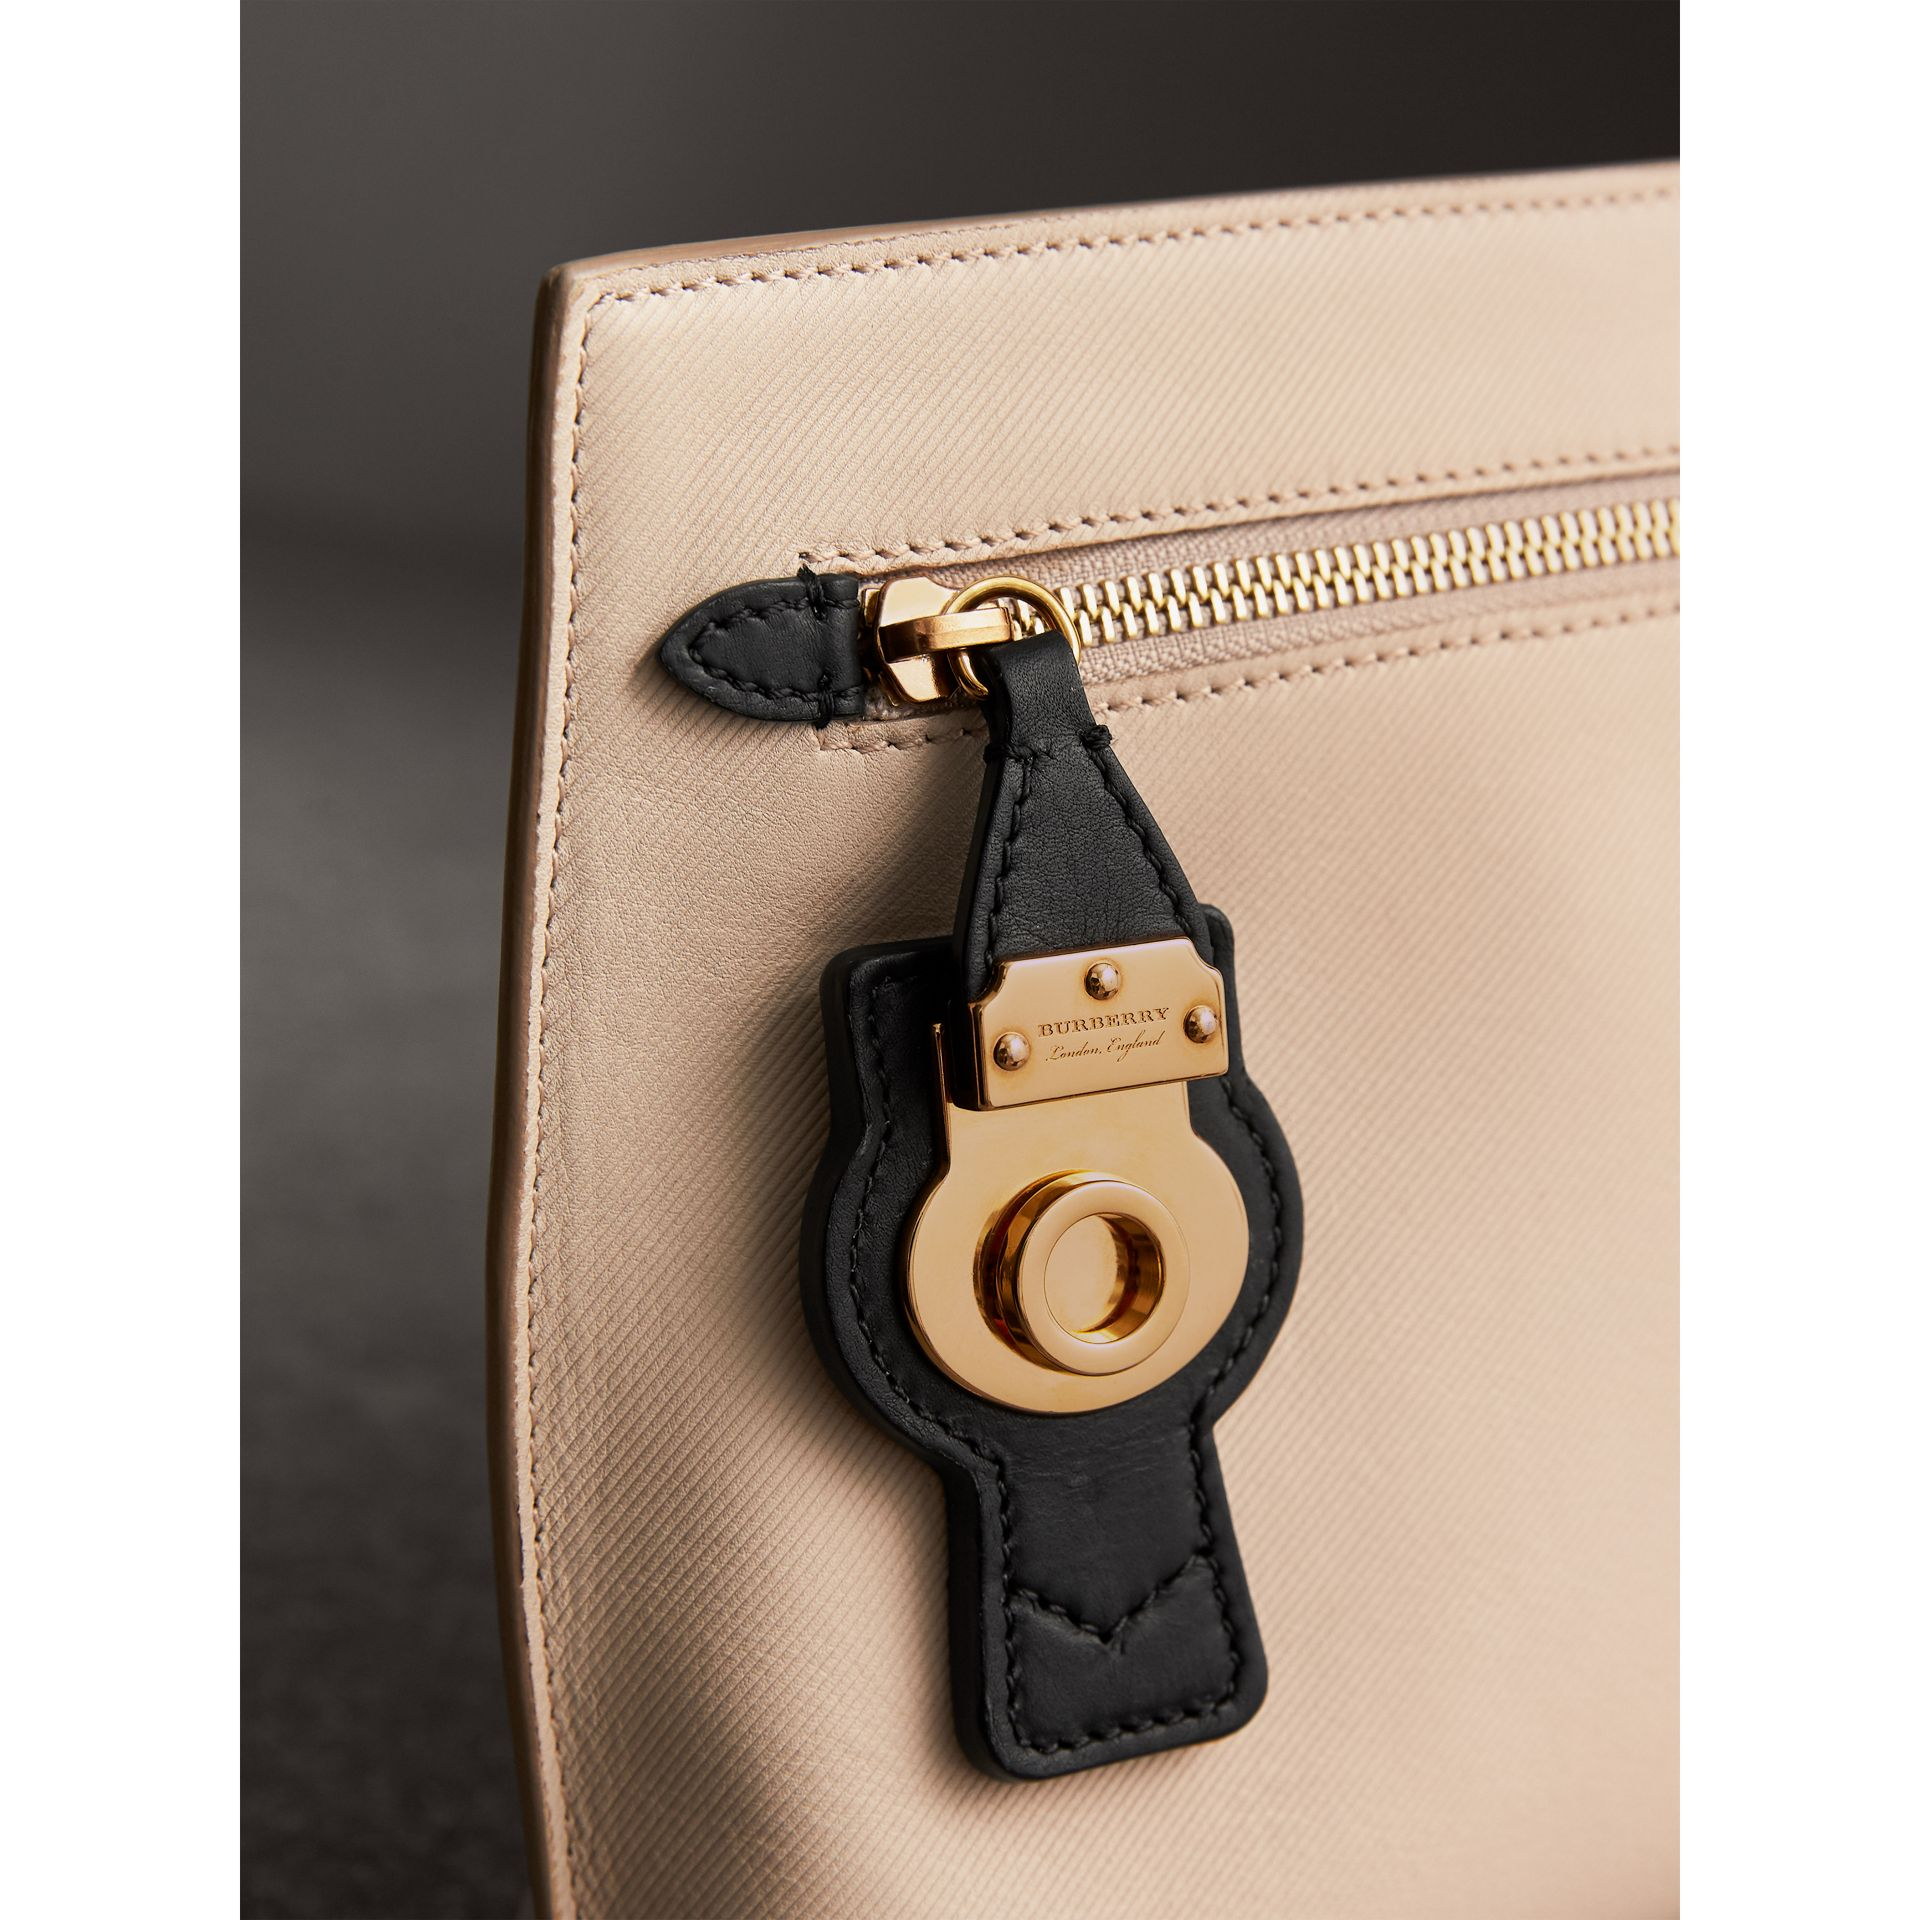 Two-tone Trench Leather Wristlet Pouch in Limestone/black - Women | Burberry Singapore - gallery image 2